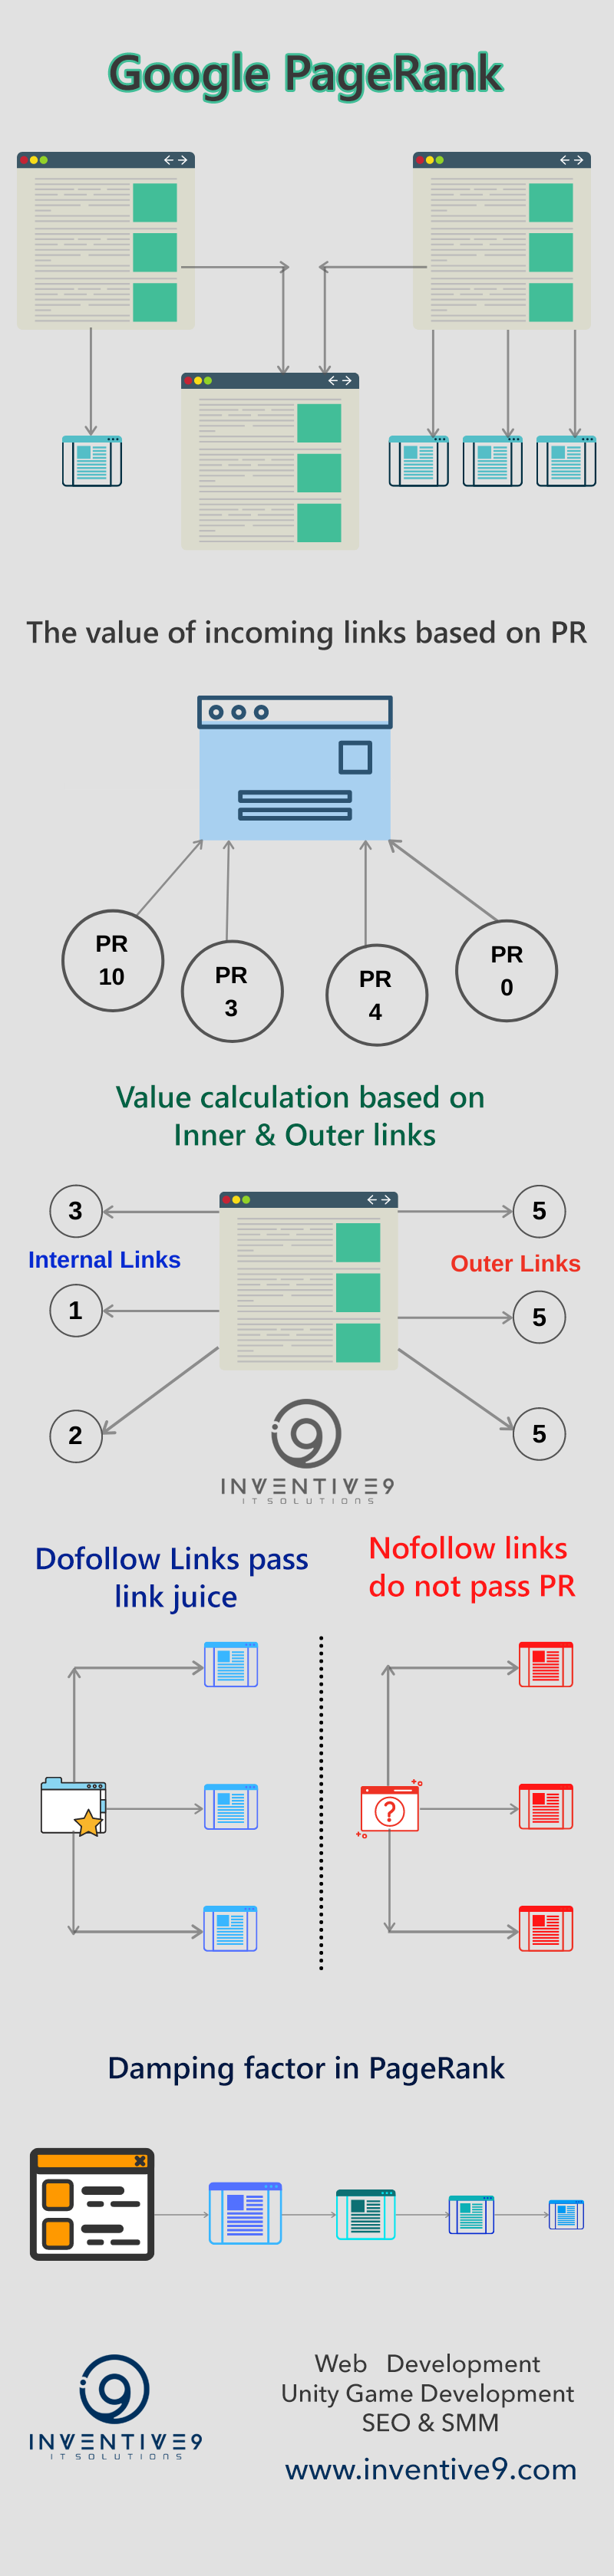 google pagerank infographic